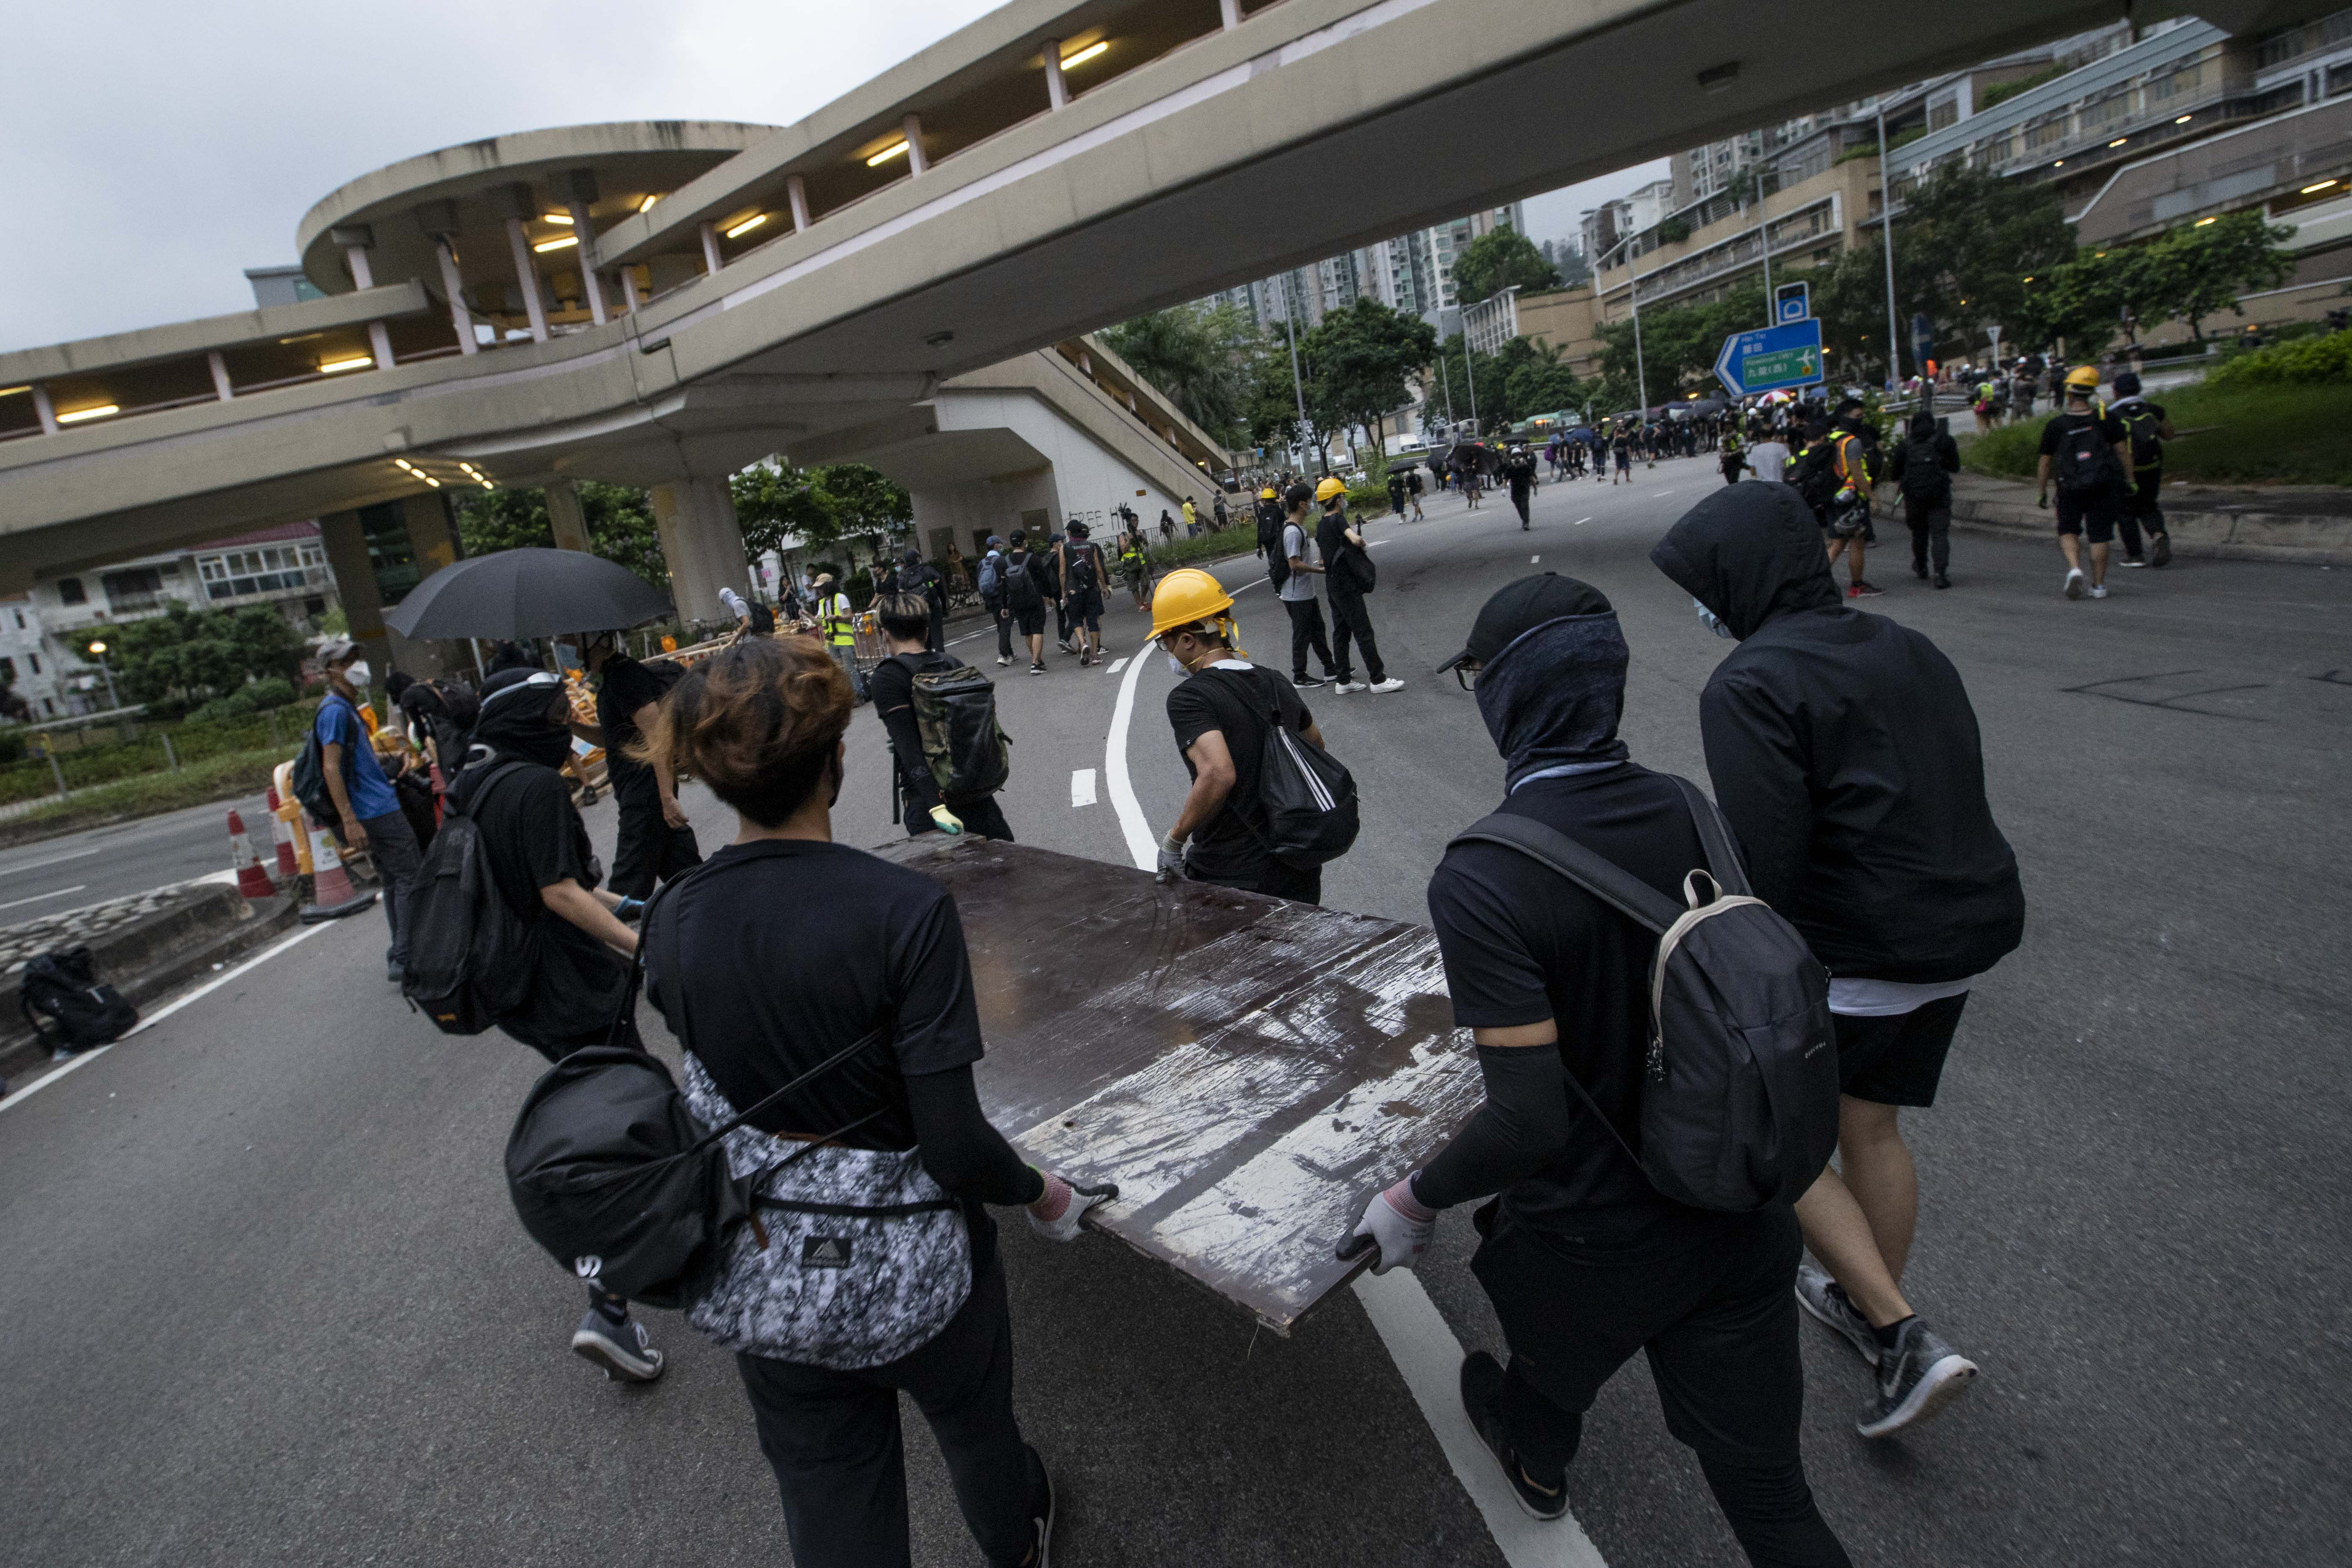 2 Months on, Hong Kong Remains Defiant